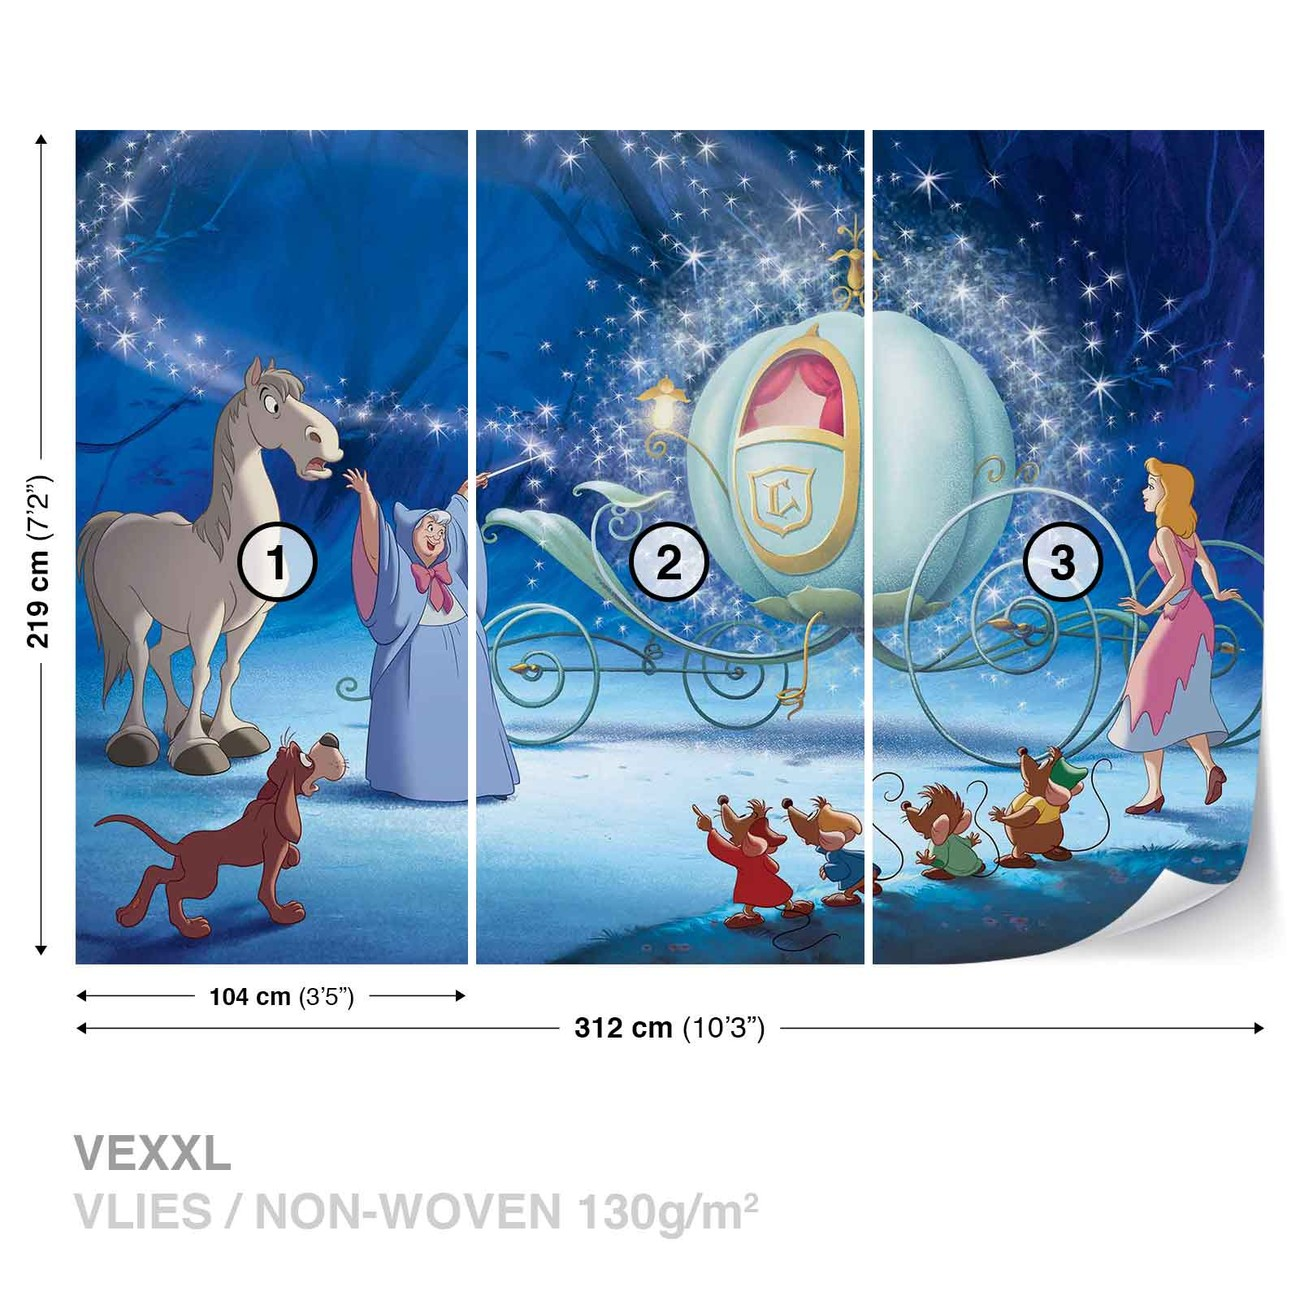 Disney princesses cinderella wall paper mural buy at for Disney princess wall mural tesco